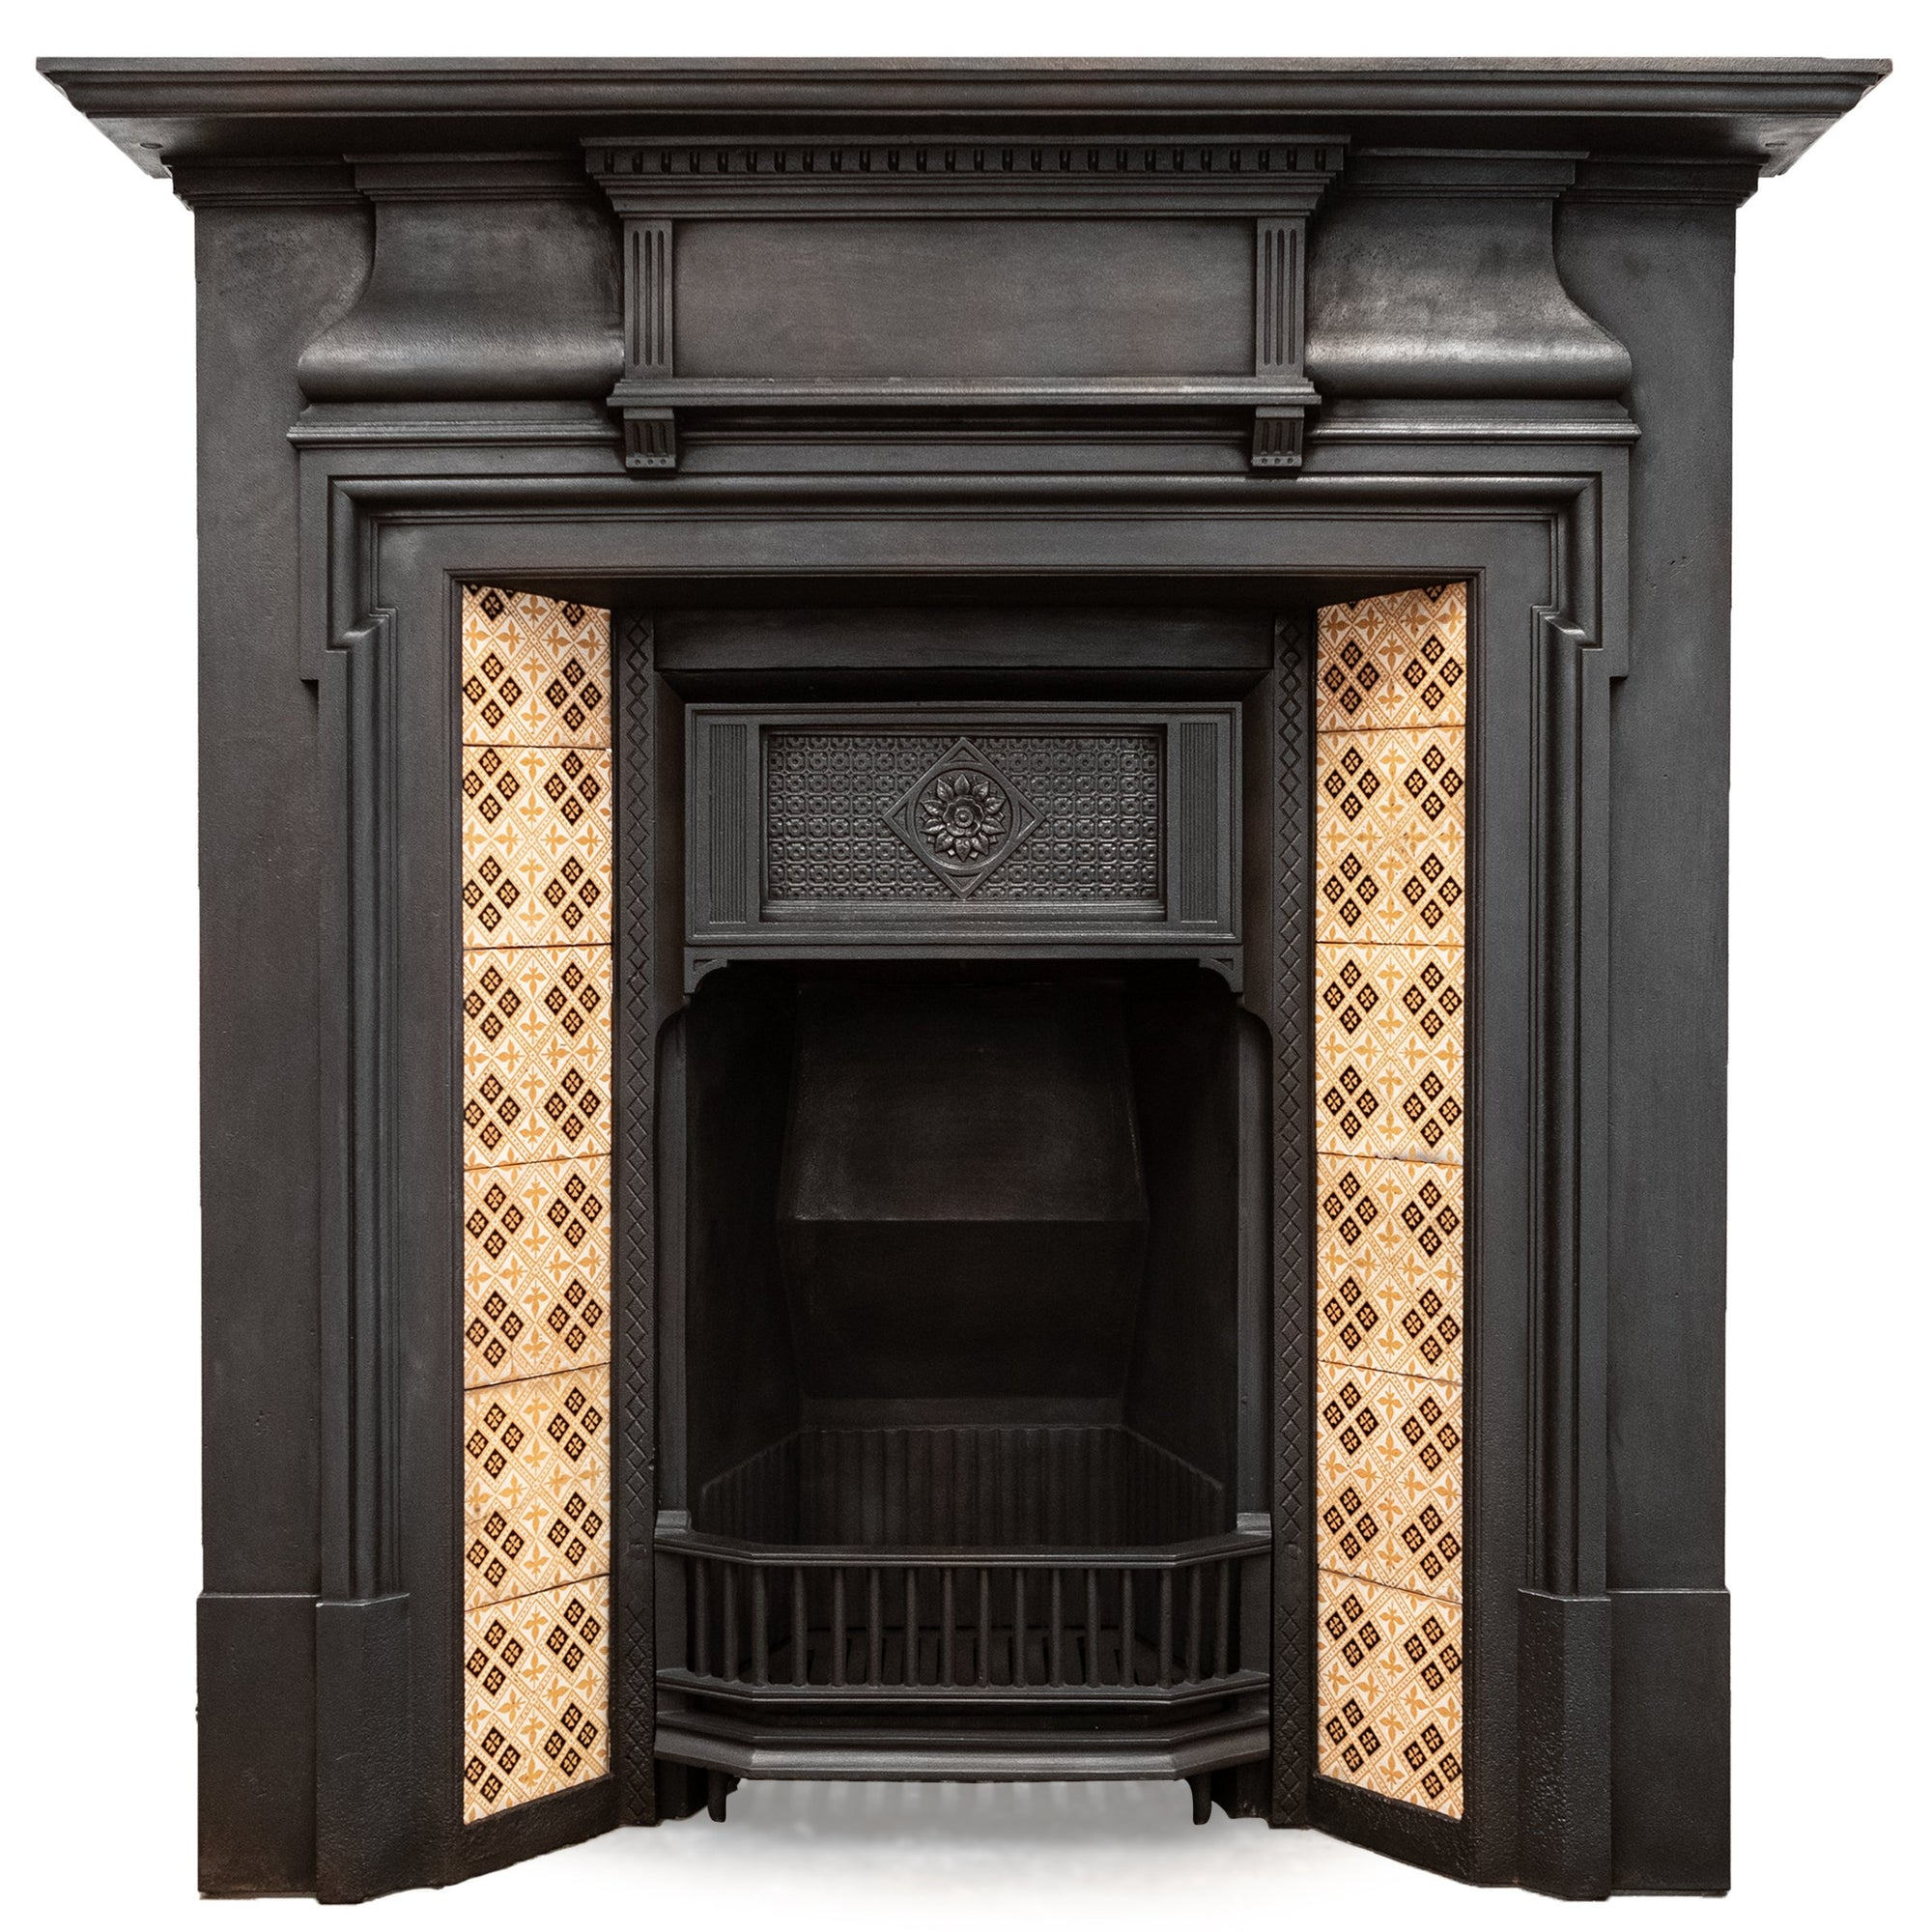 Antique Tiled Cast Iron Combination Fireplace